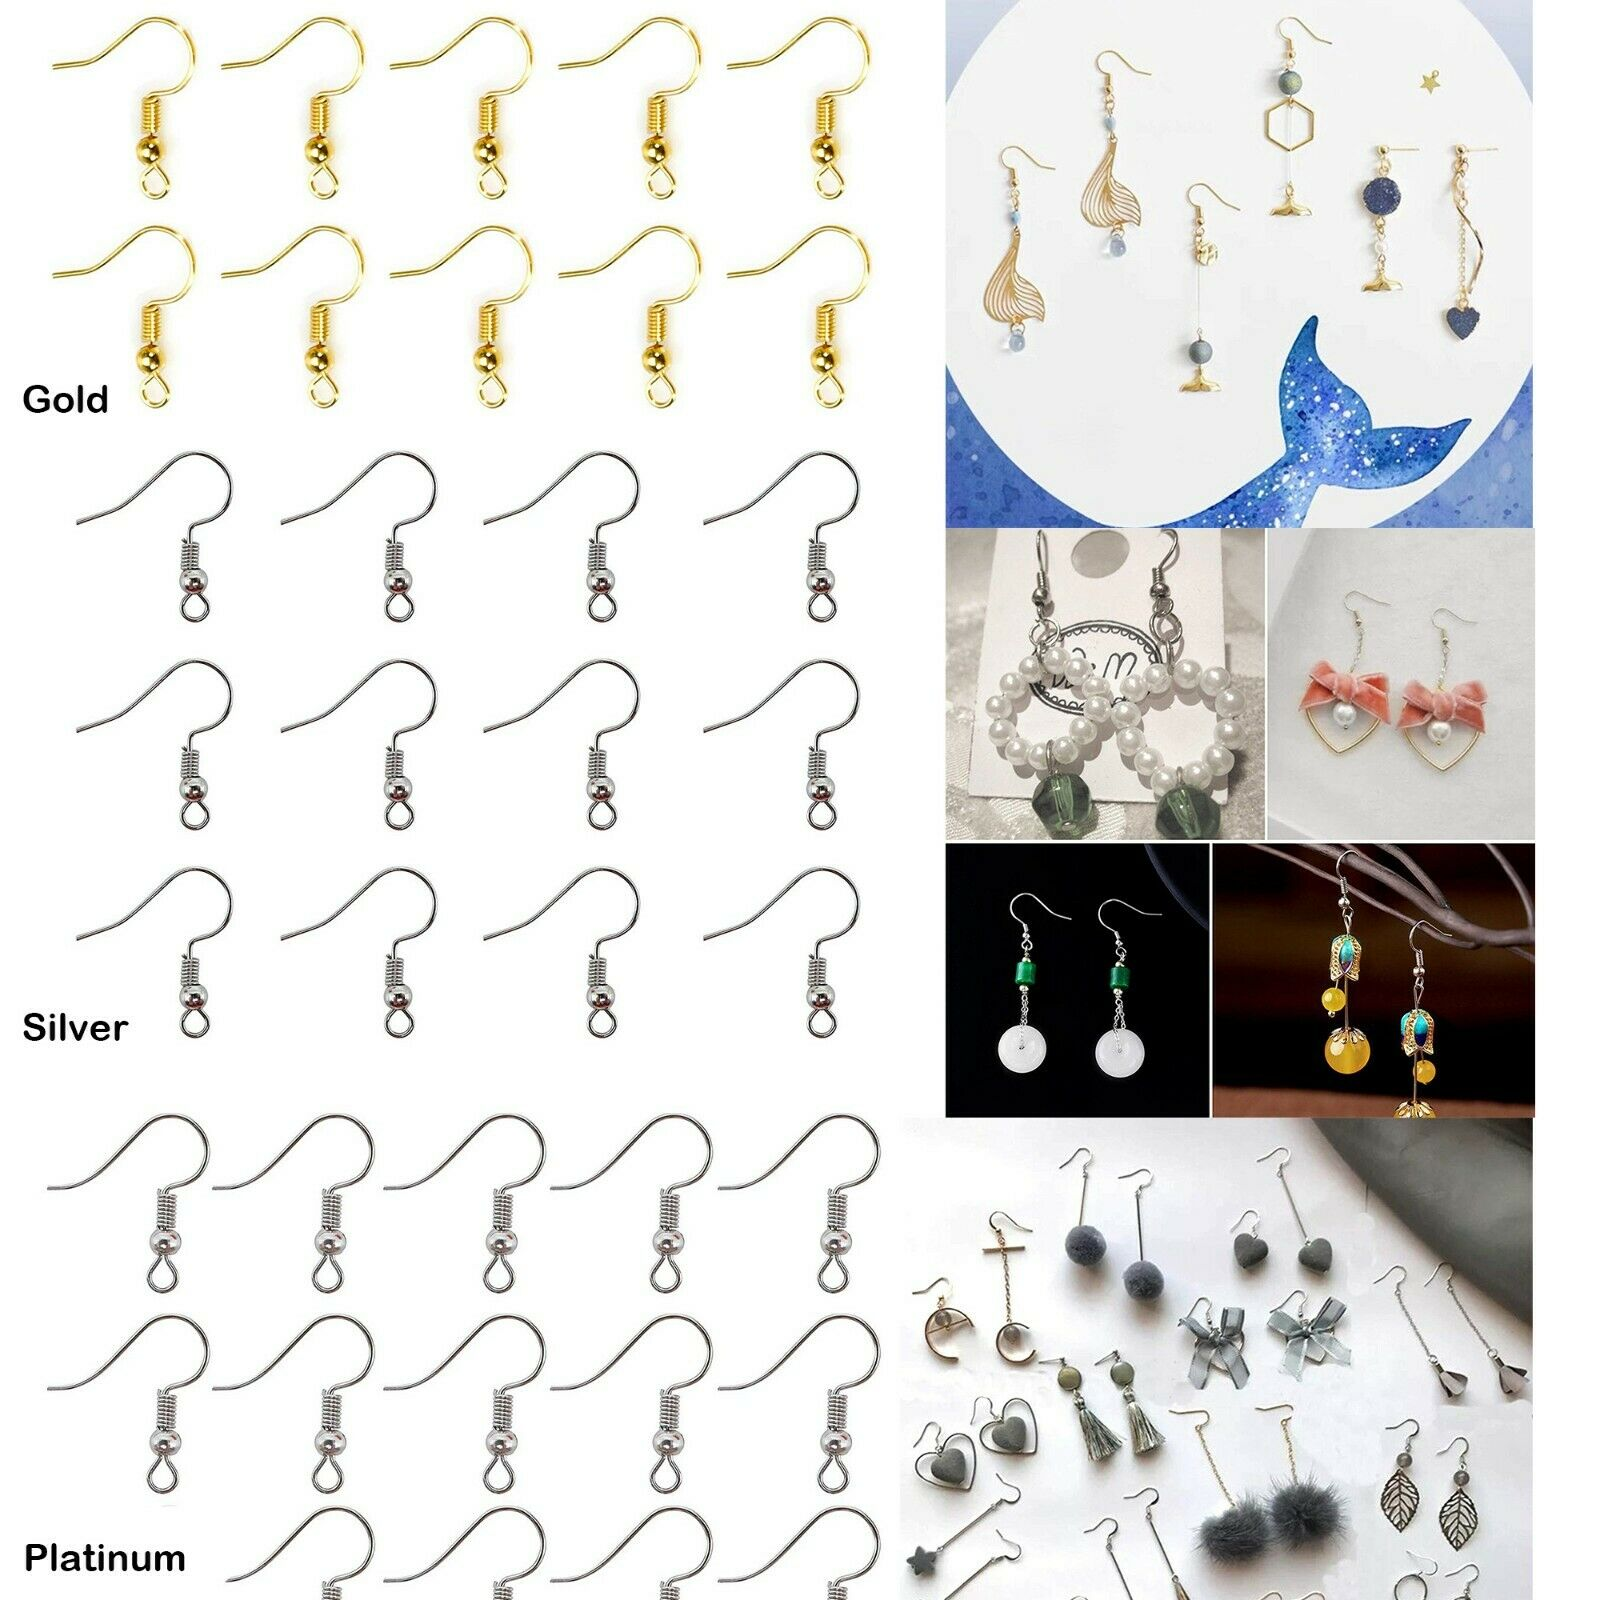 EOPER 100 Pieces Earring Hooks 925 Sterling Silver Fish Hooks Ear Wires French Wire Hooks with 100 Clear Rubber Earring Safety Backs for DIY Earring Jewelry Making